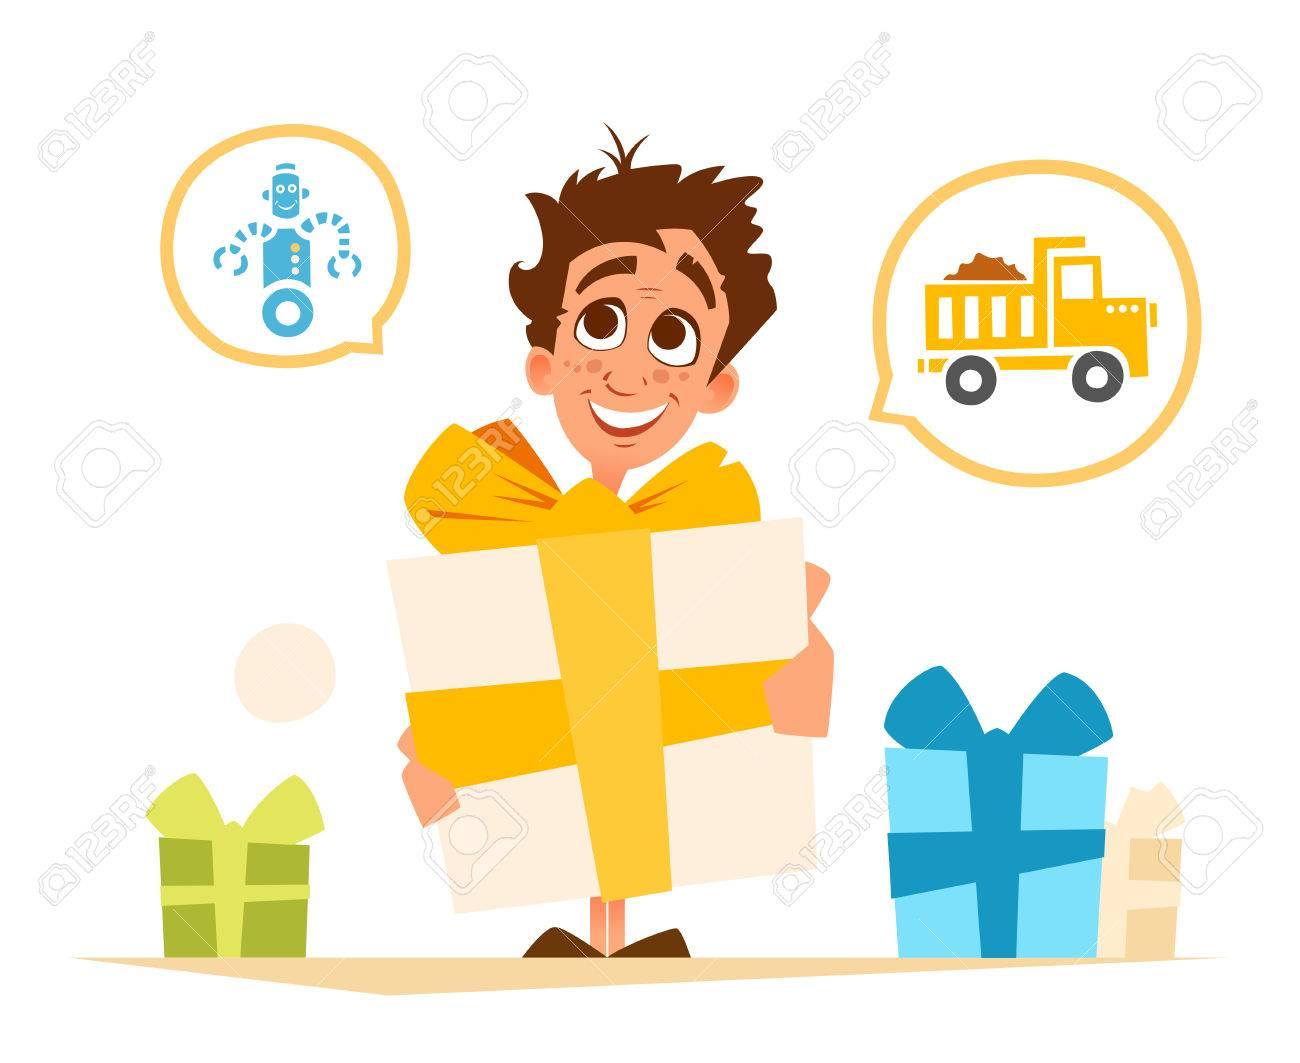 Color vector illustration of happy smile boy child kid and big gift box - 83392776